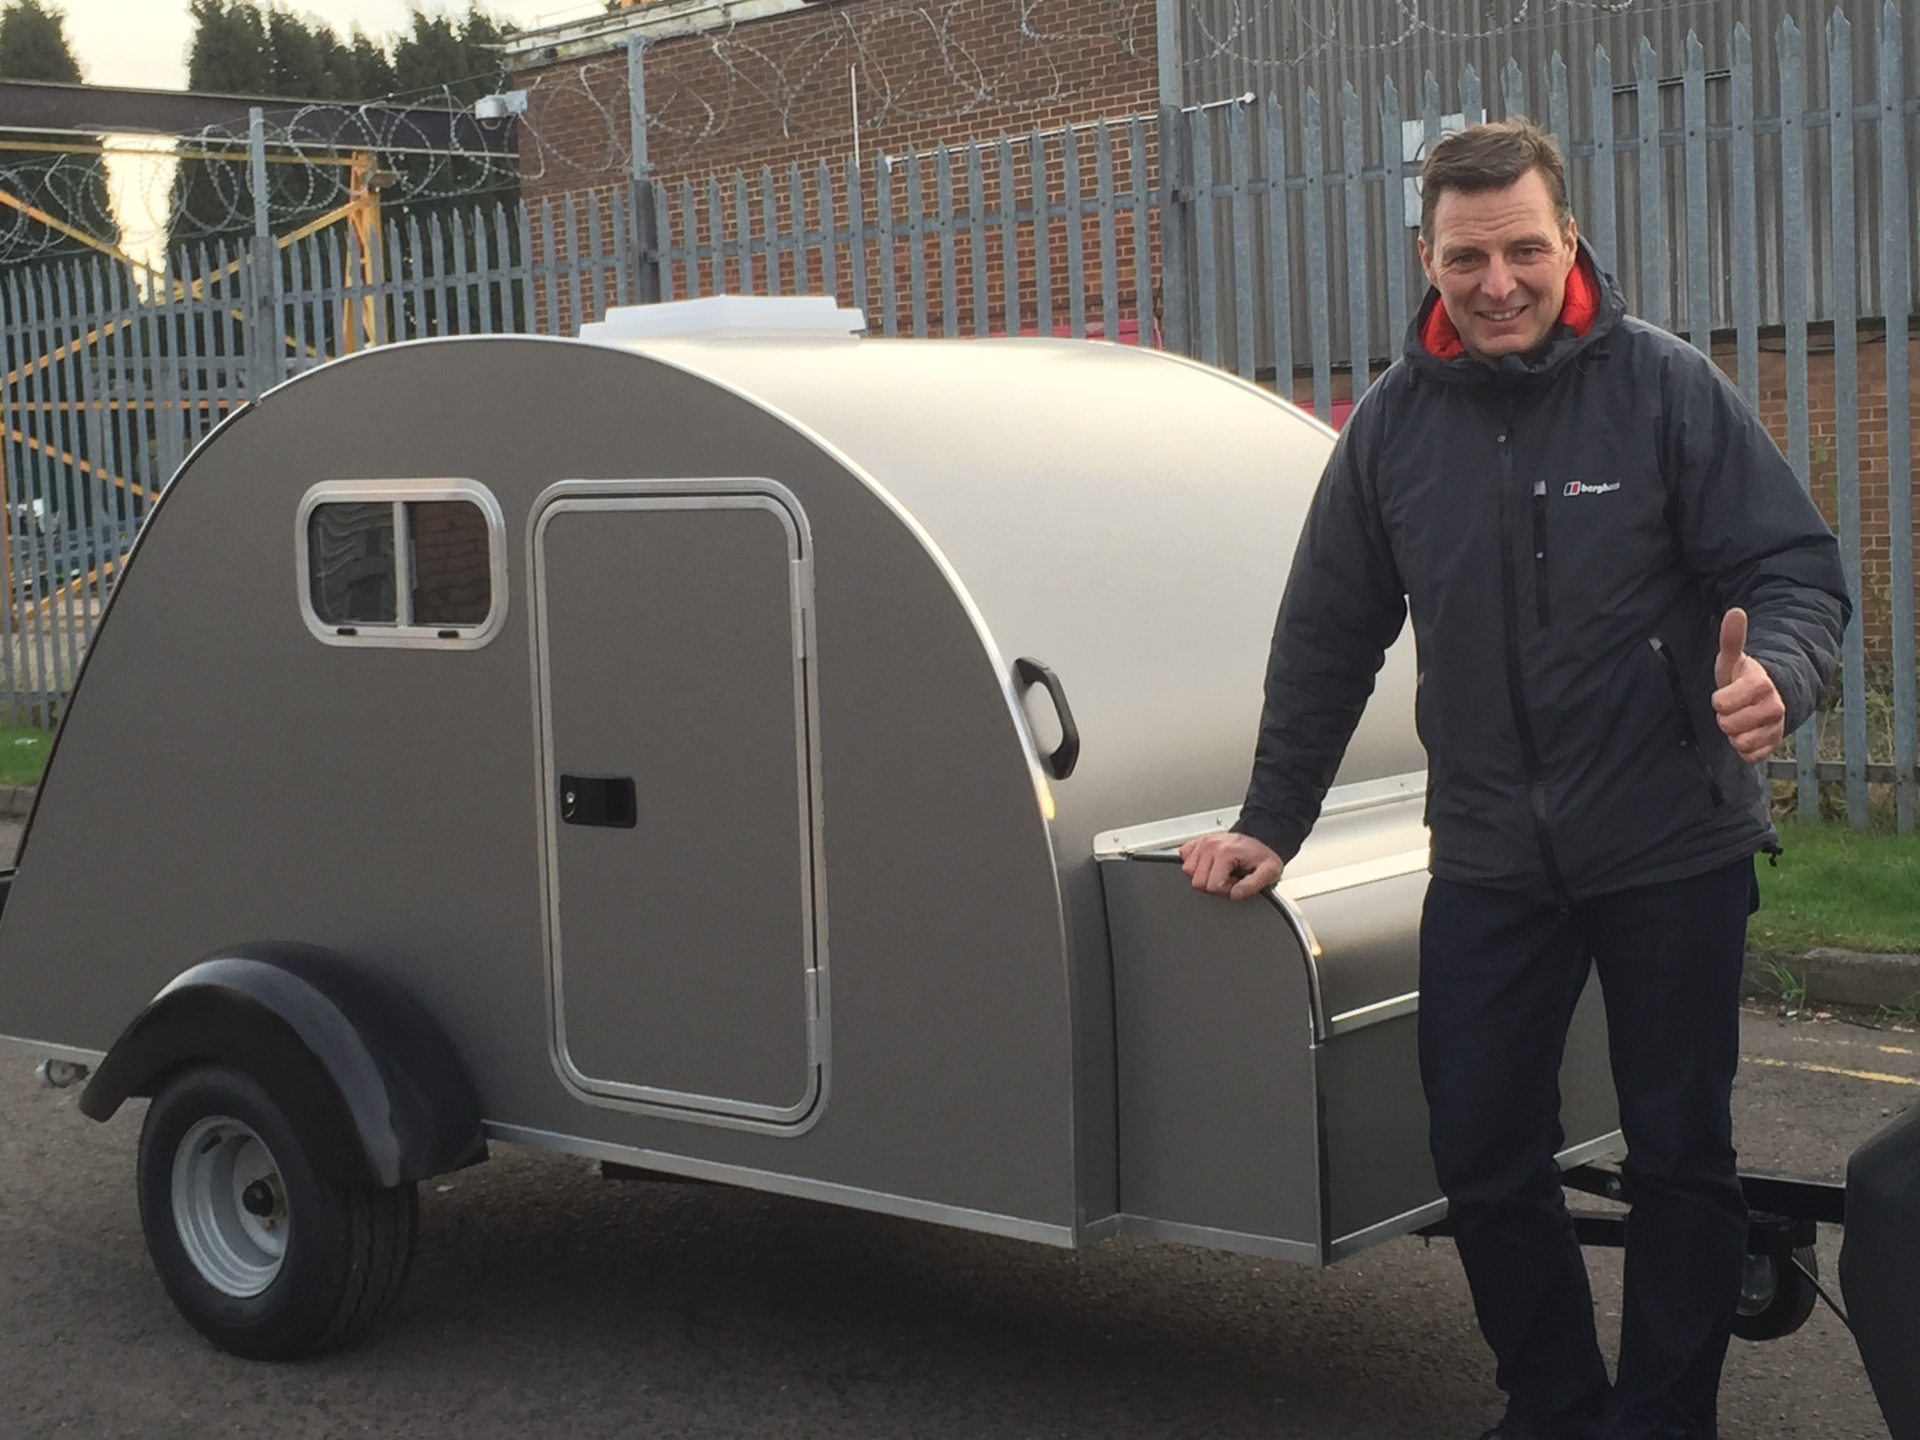 Ian's Grey Metalic Teardrop Trailer